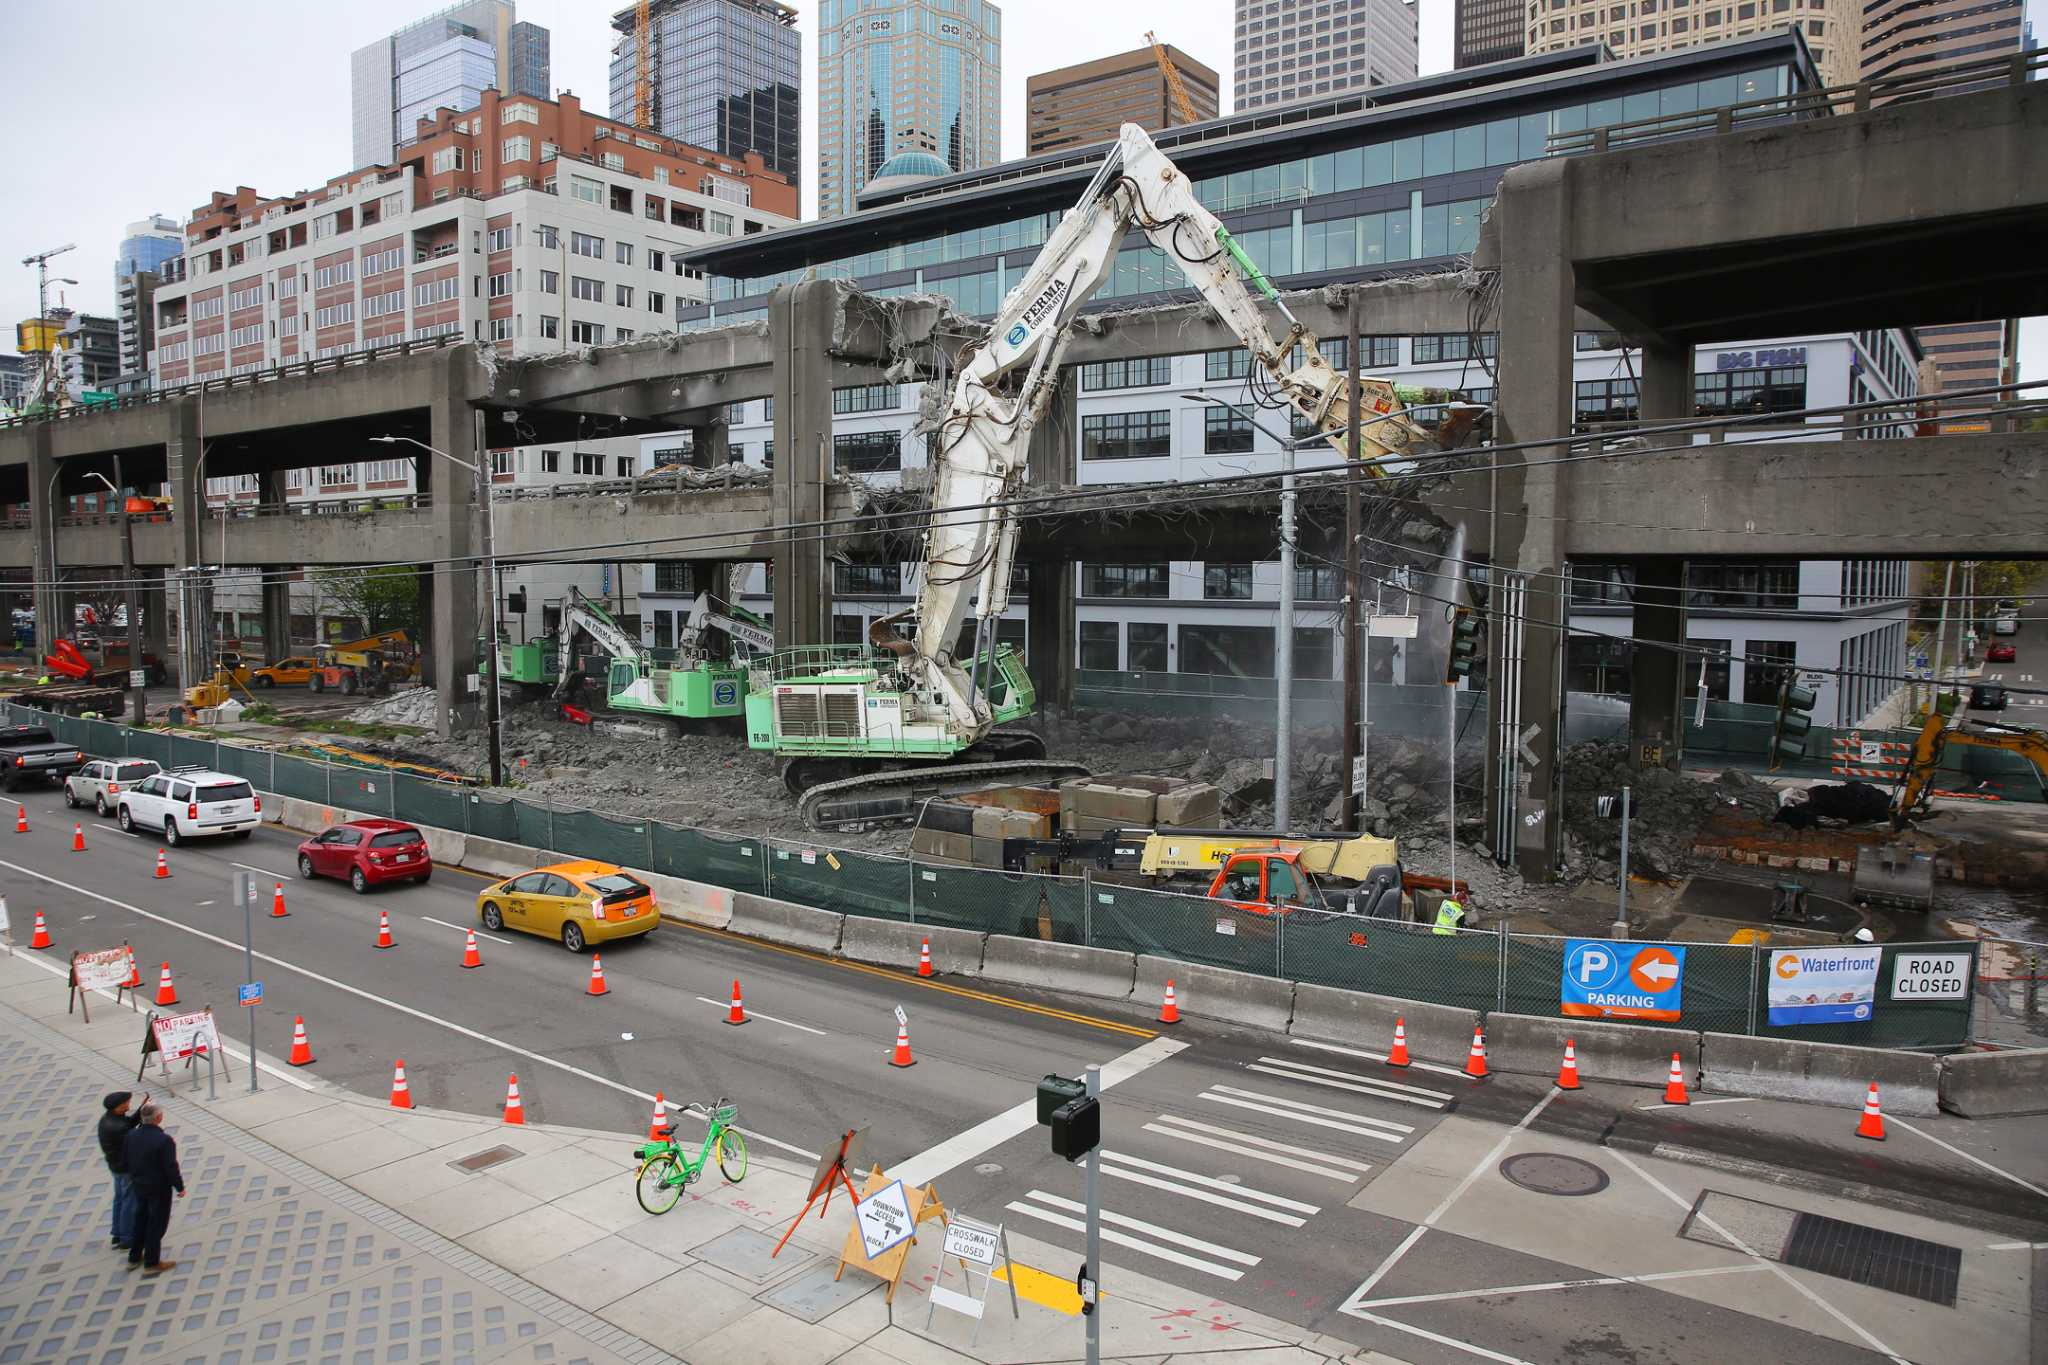 Time-lapse video shows Alaskan Way Viaduct demolition between Marion and Columbia streets in Seattle